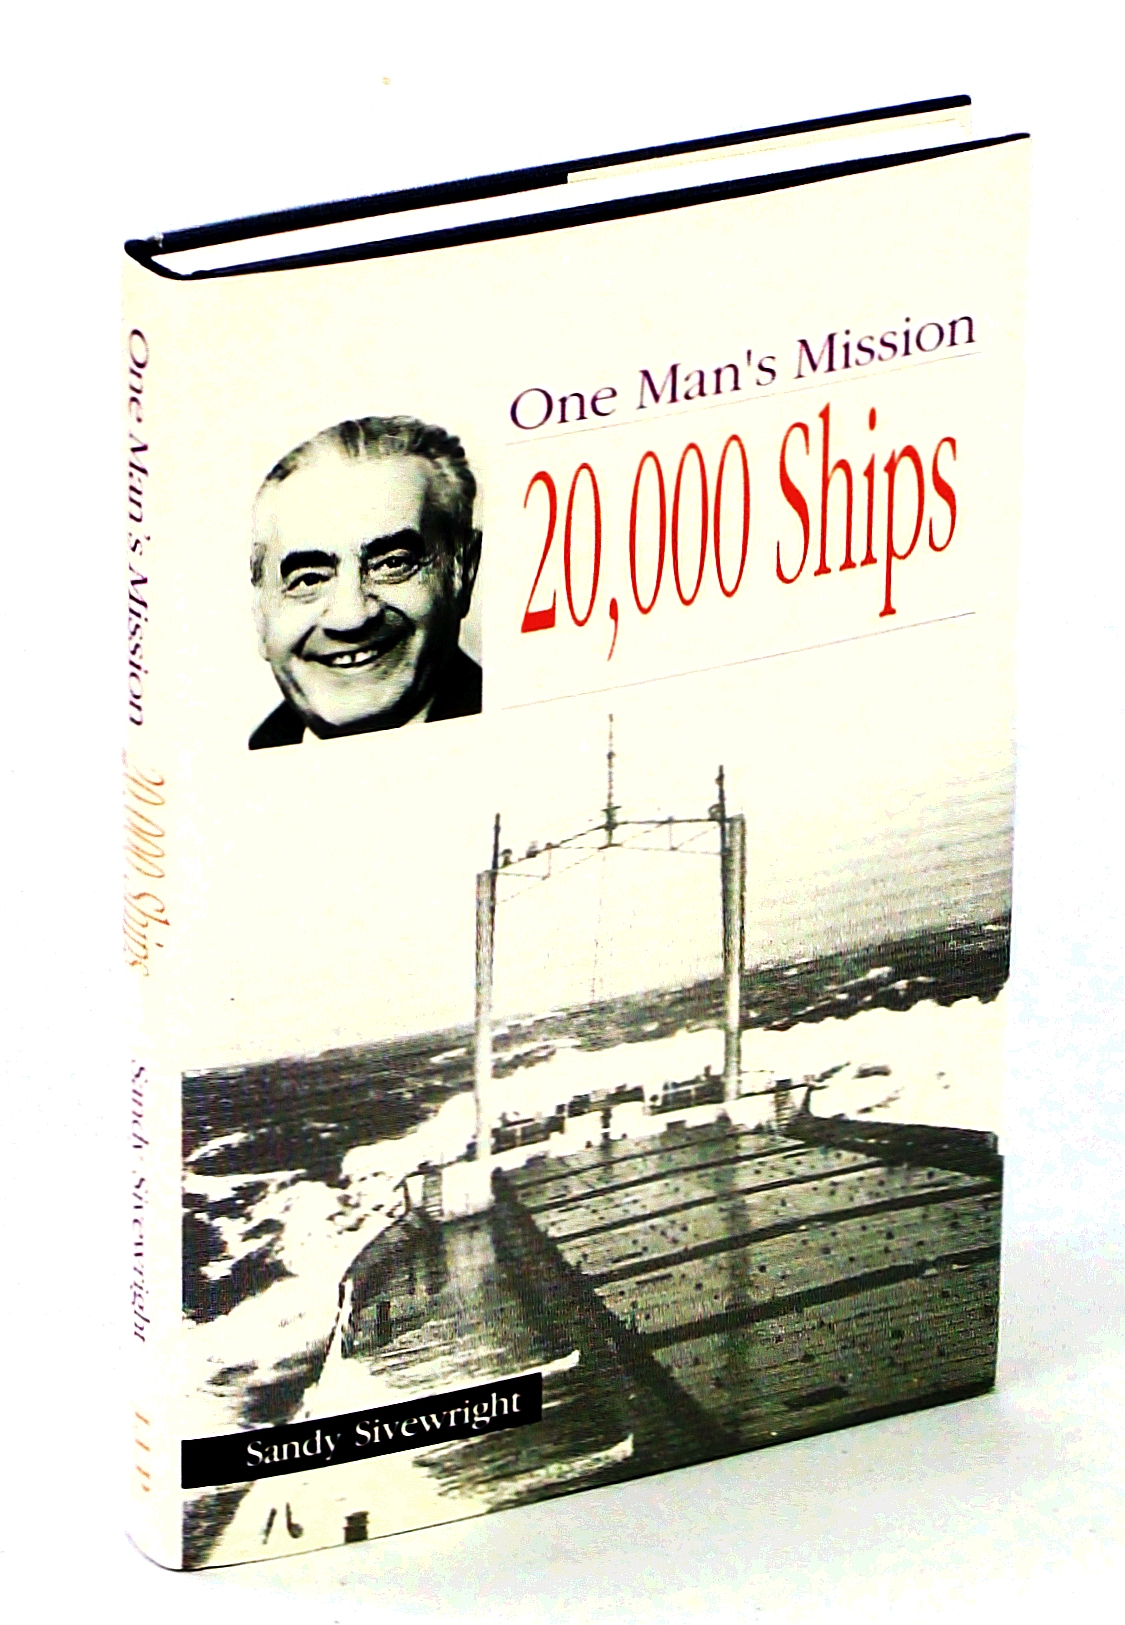 Image for One Man's Mission: 20,000 Ships